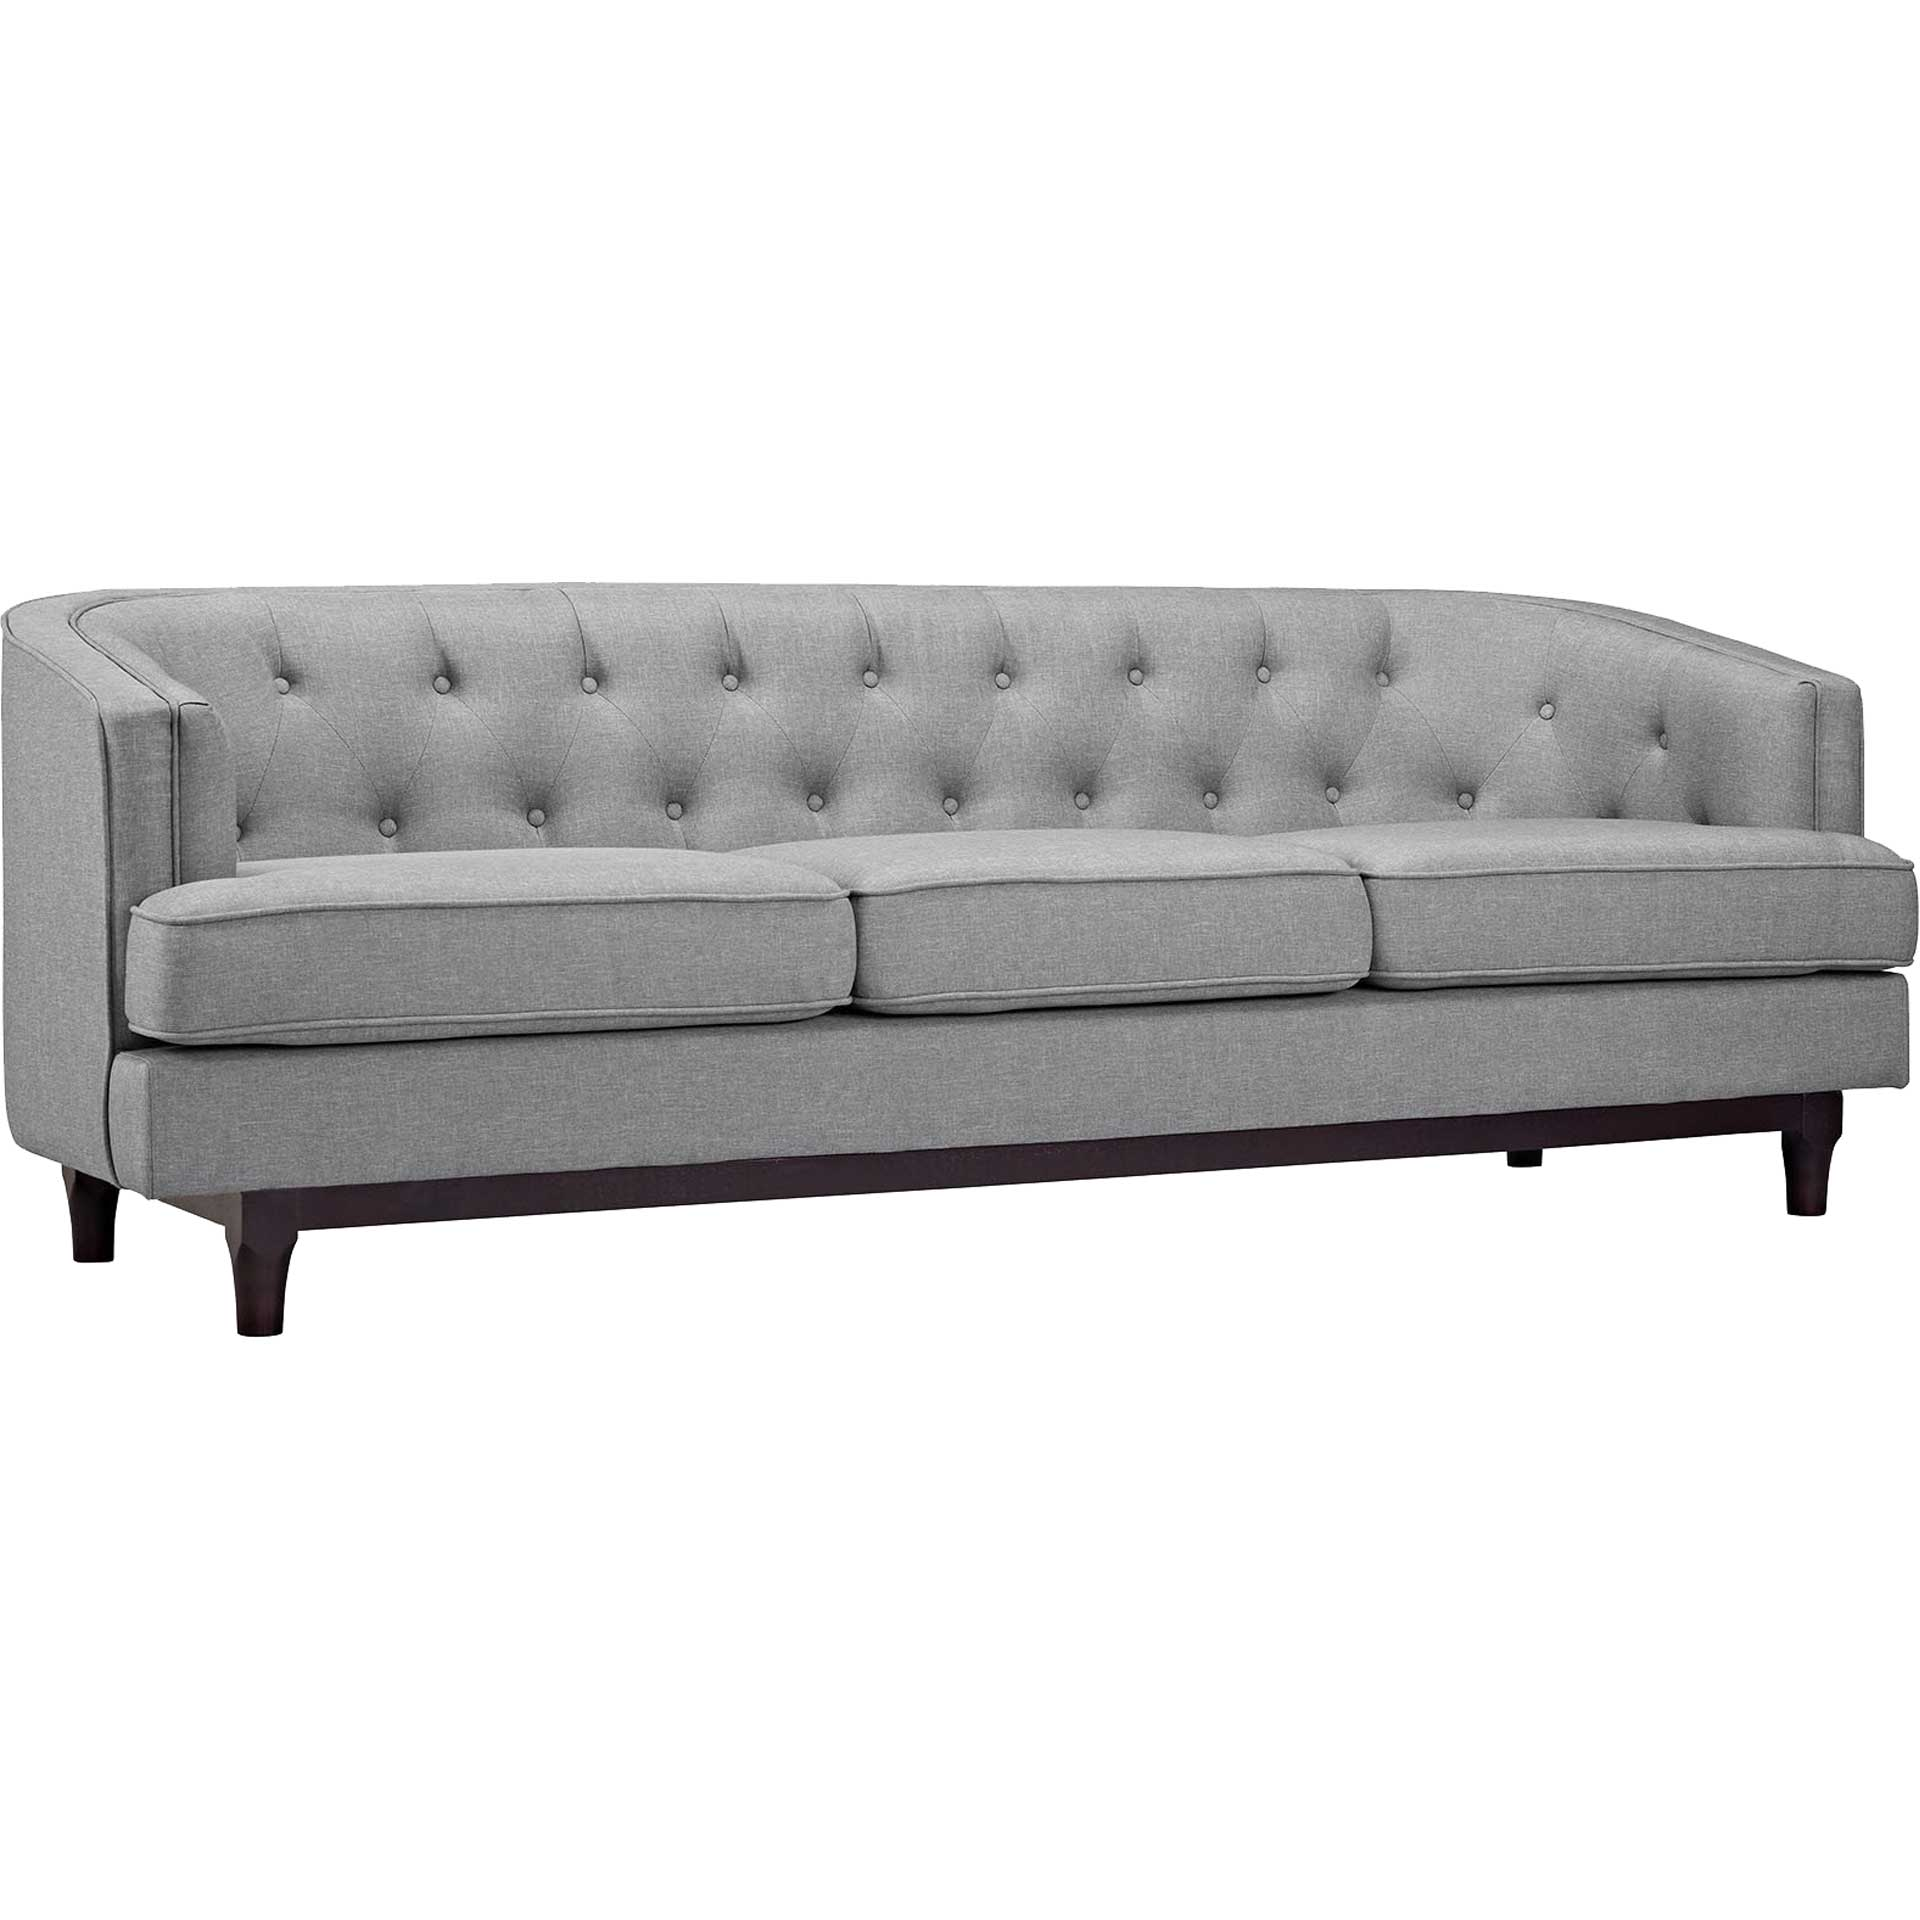 Coastline Sofa Light Gray